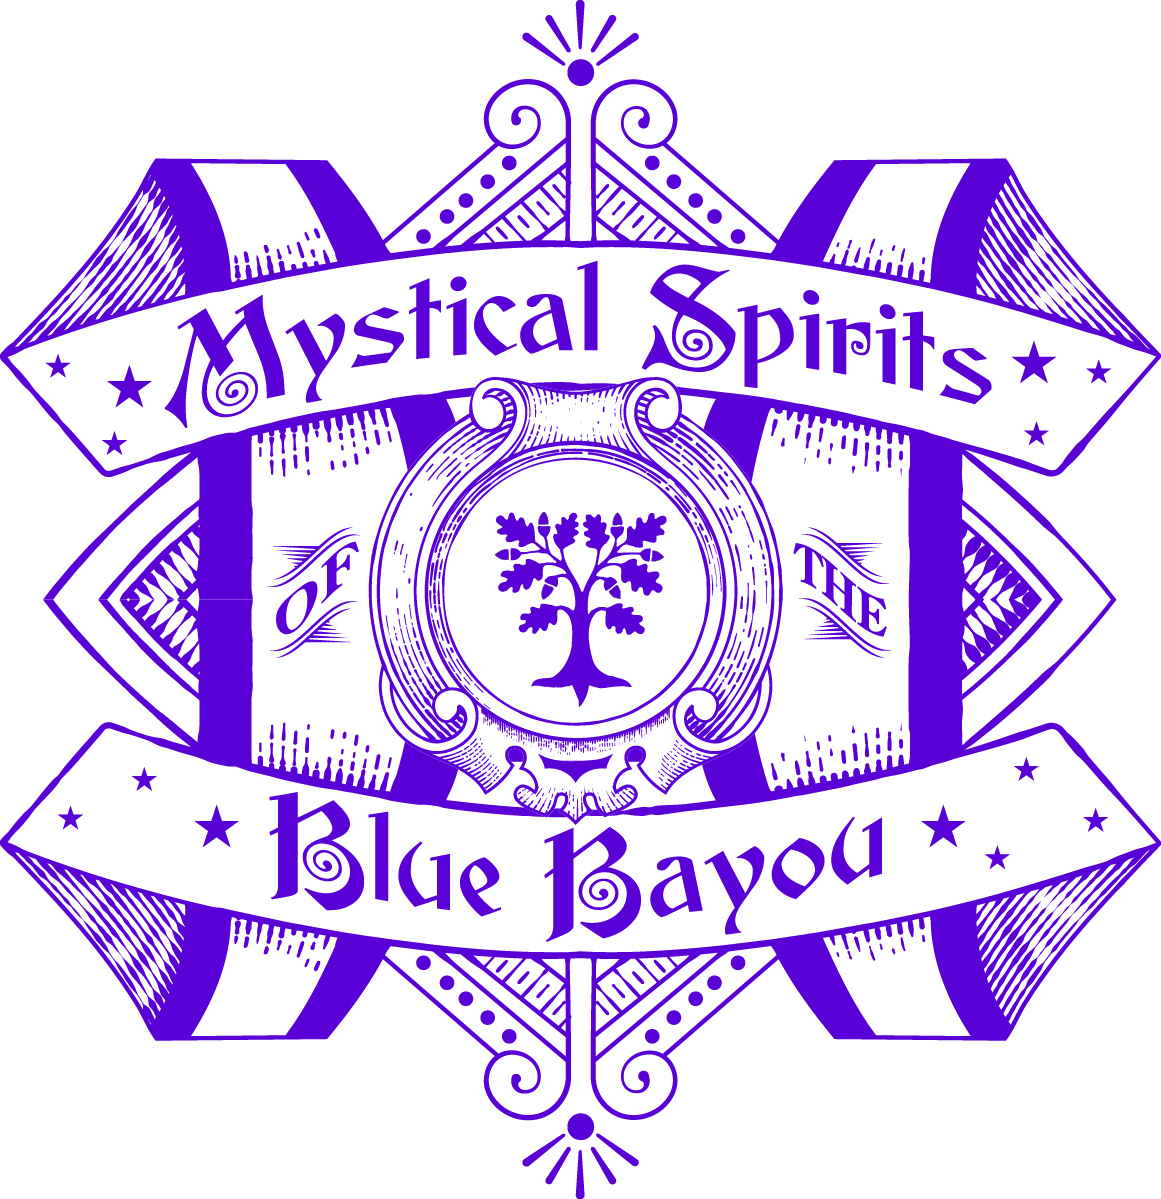 Mystical Spirits of the Blue Bayou: New Premium Dining Experience ...